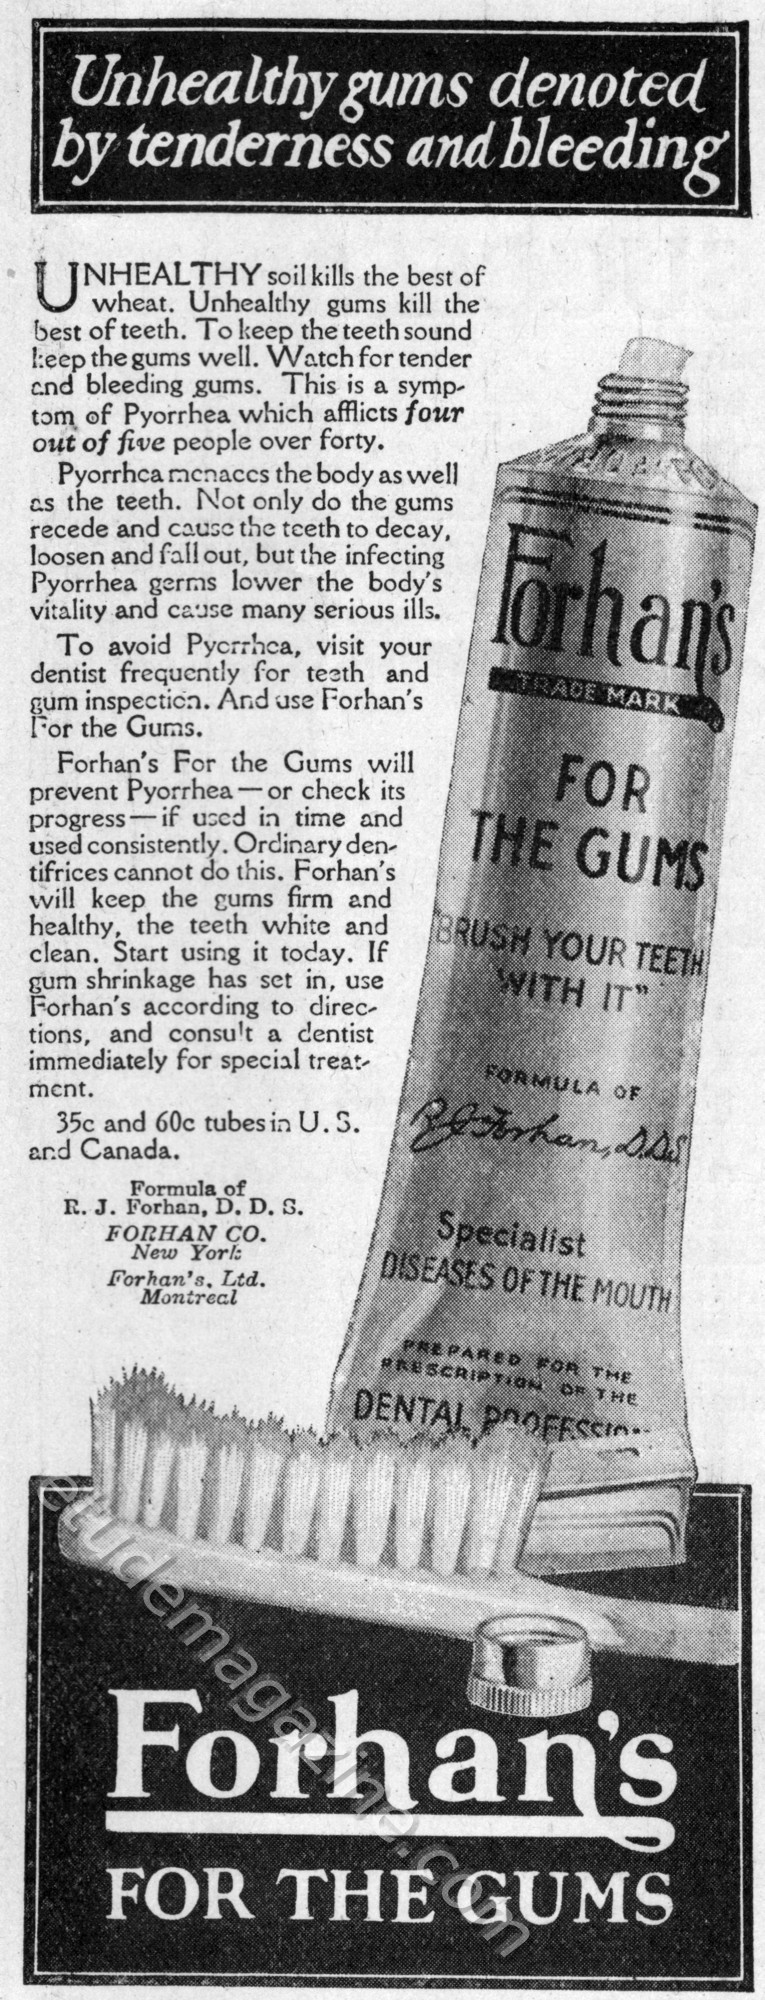 Forhan's for the Gums